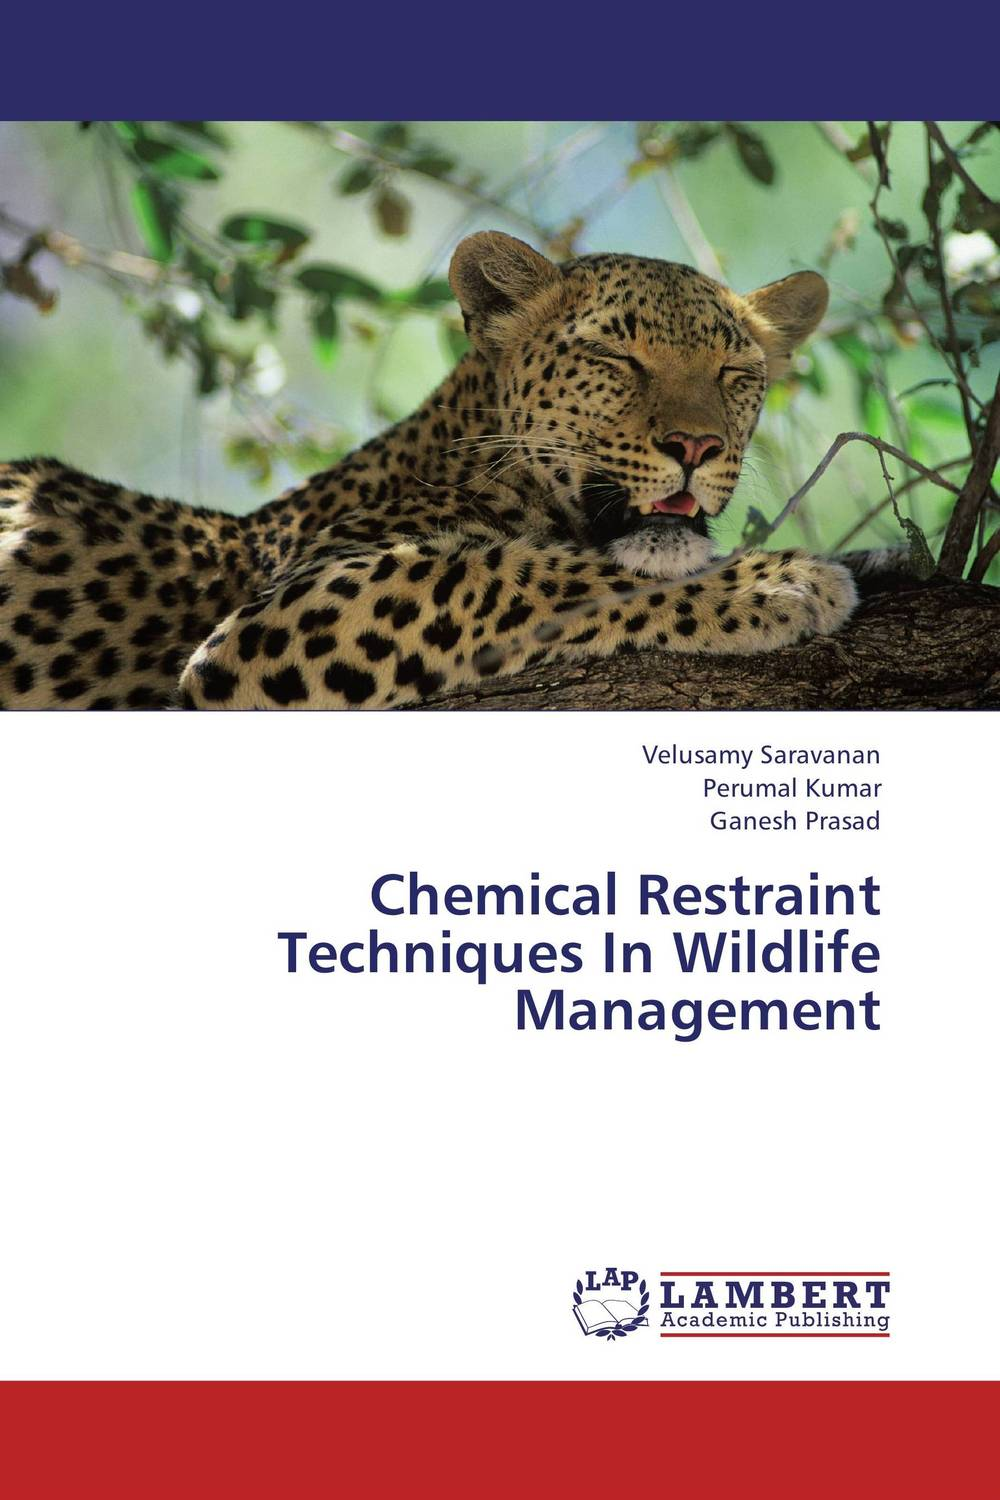 Chemical Restraint Techniques In Wildlife Management cd halestorm into the wild life